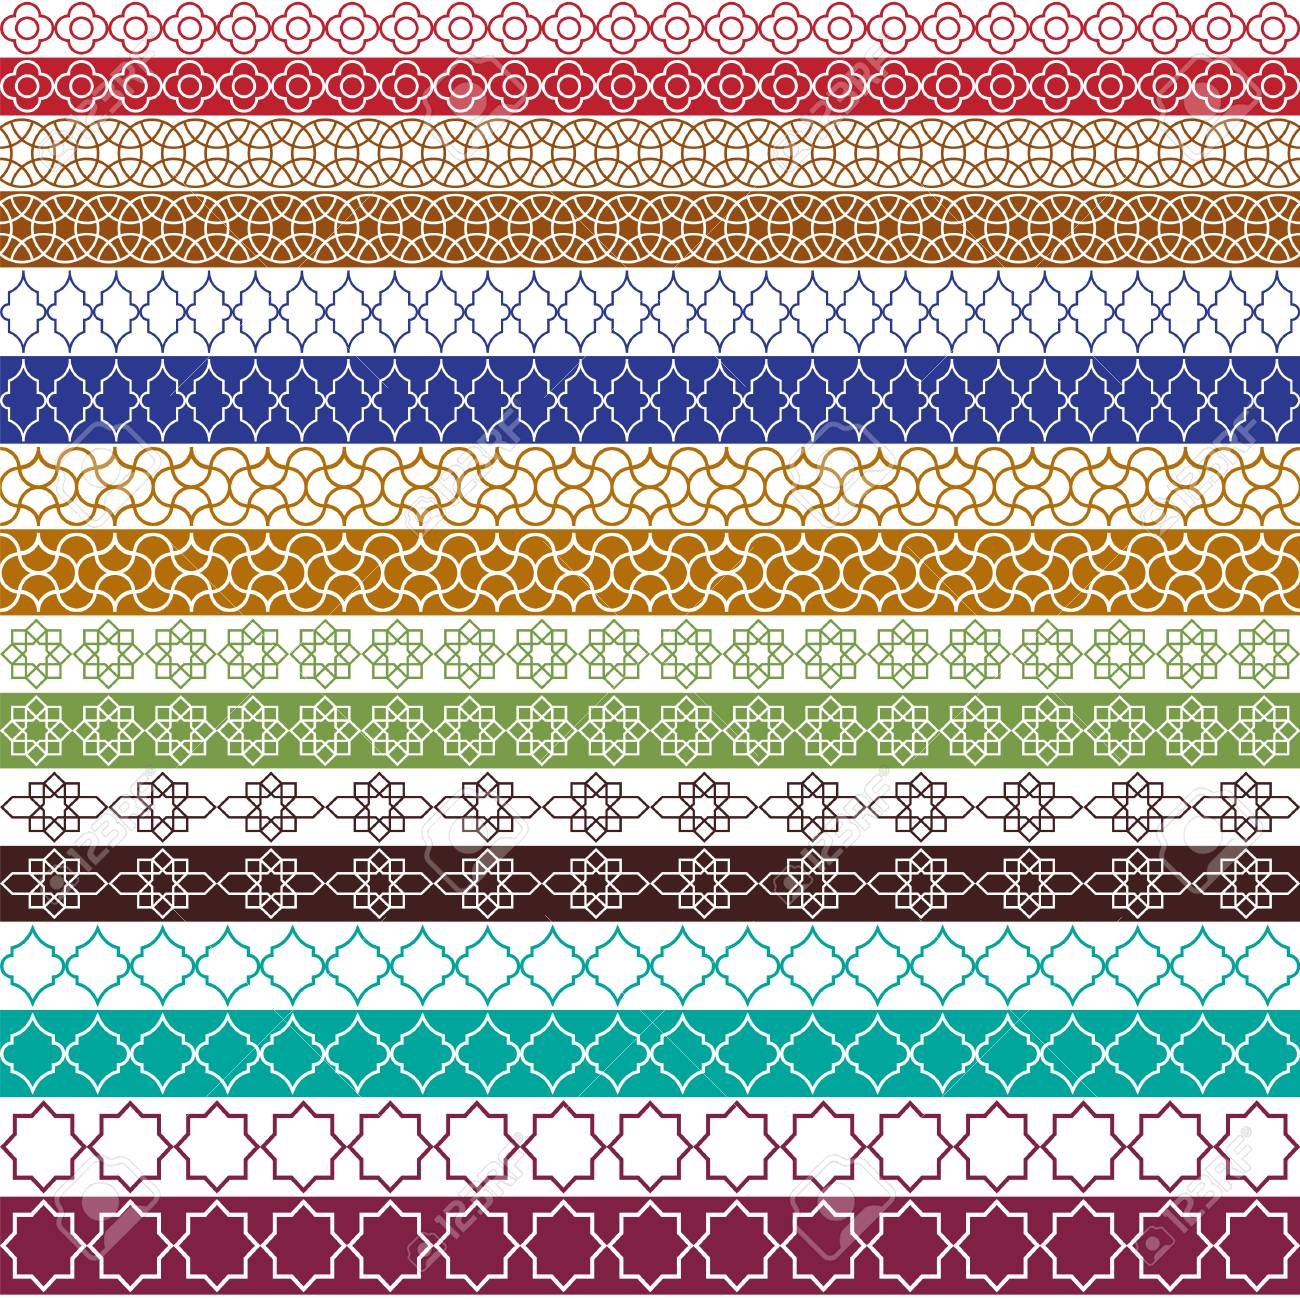 colorful Moroccan vector border patterns - 94642689